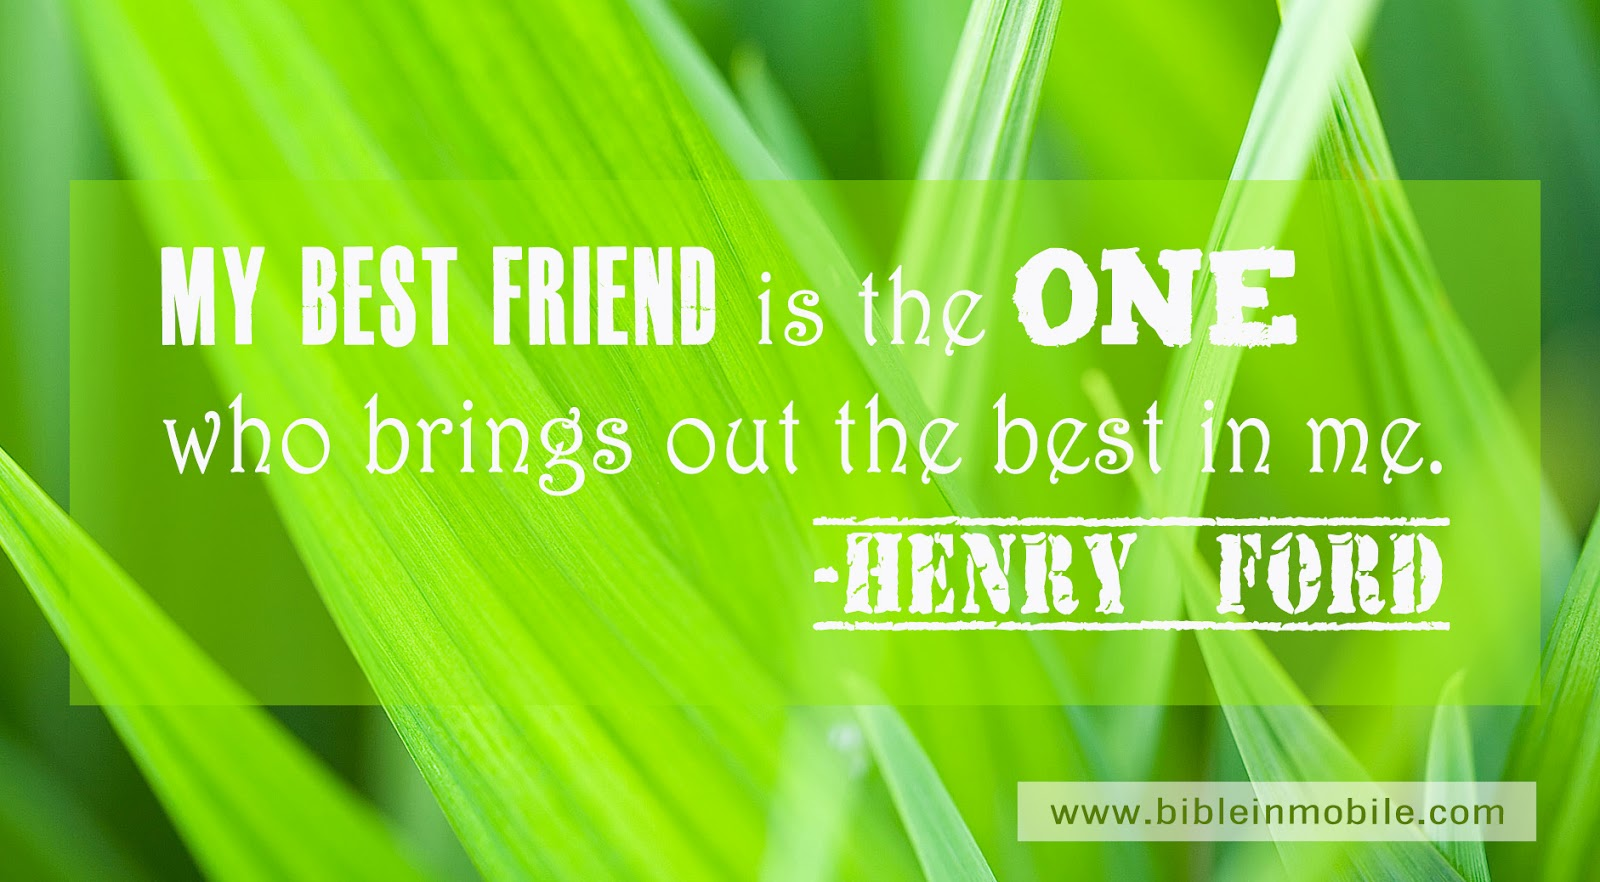 Friend Quotes In The Bible : Friendship quotes in the bible